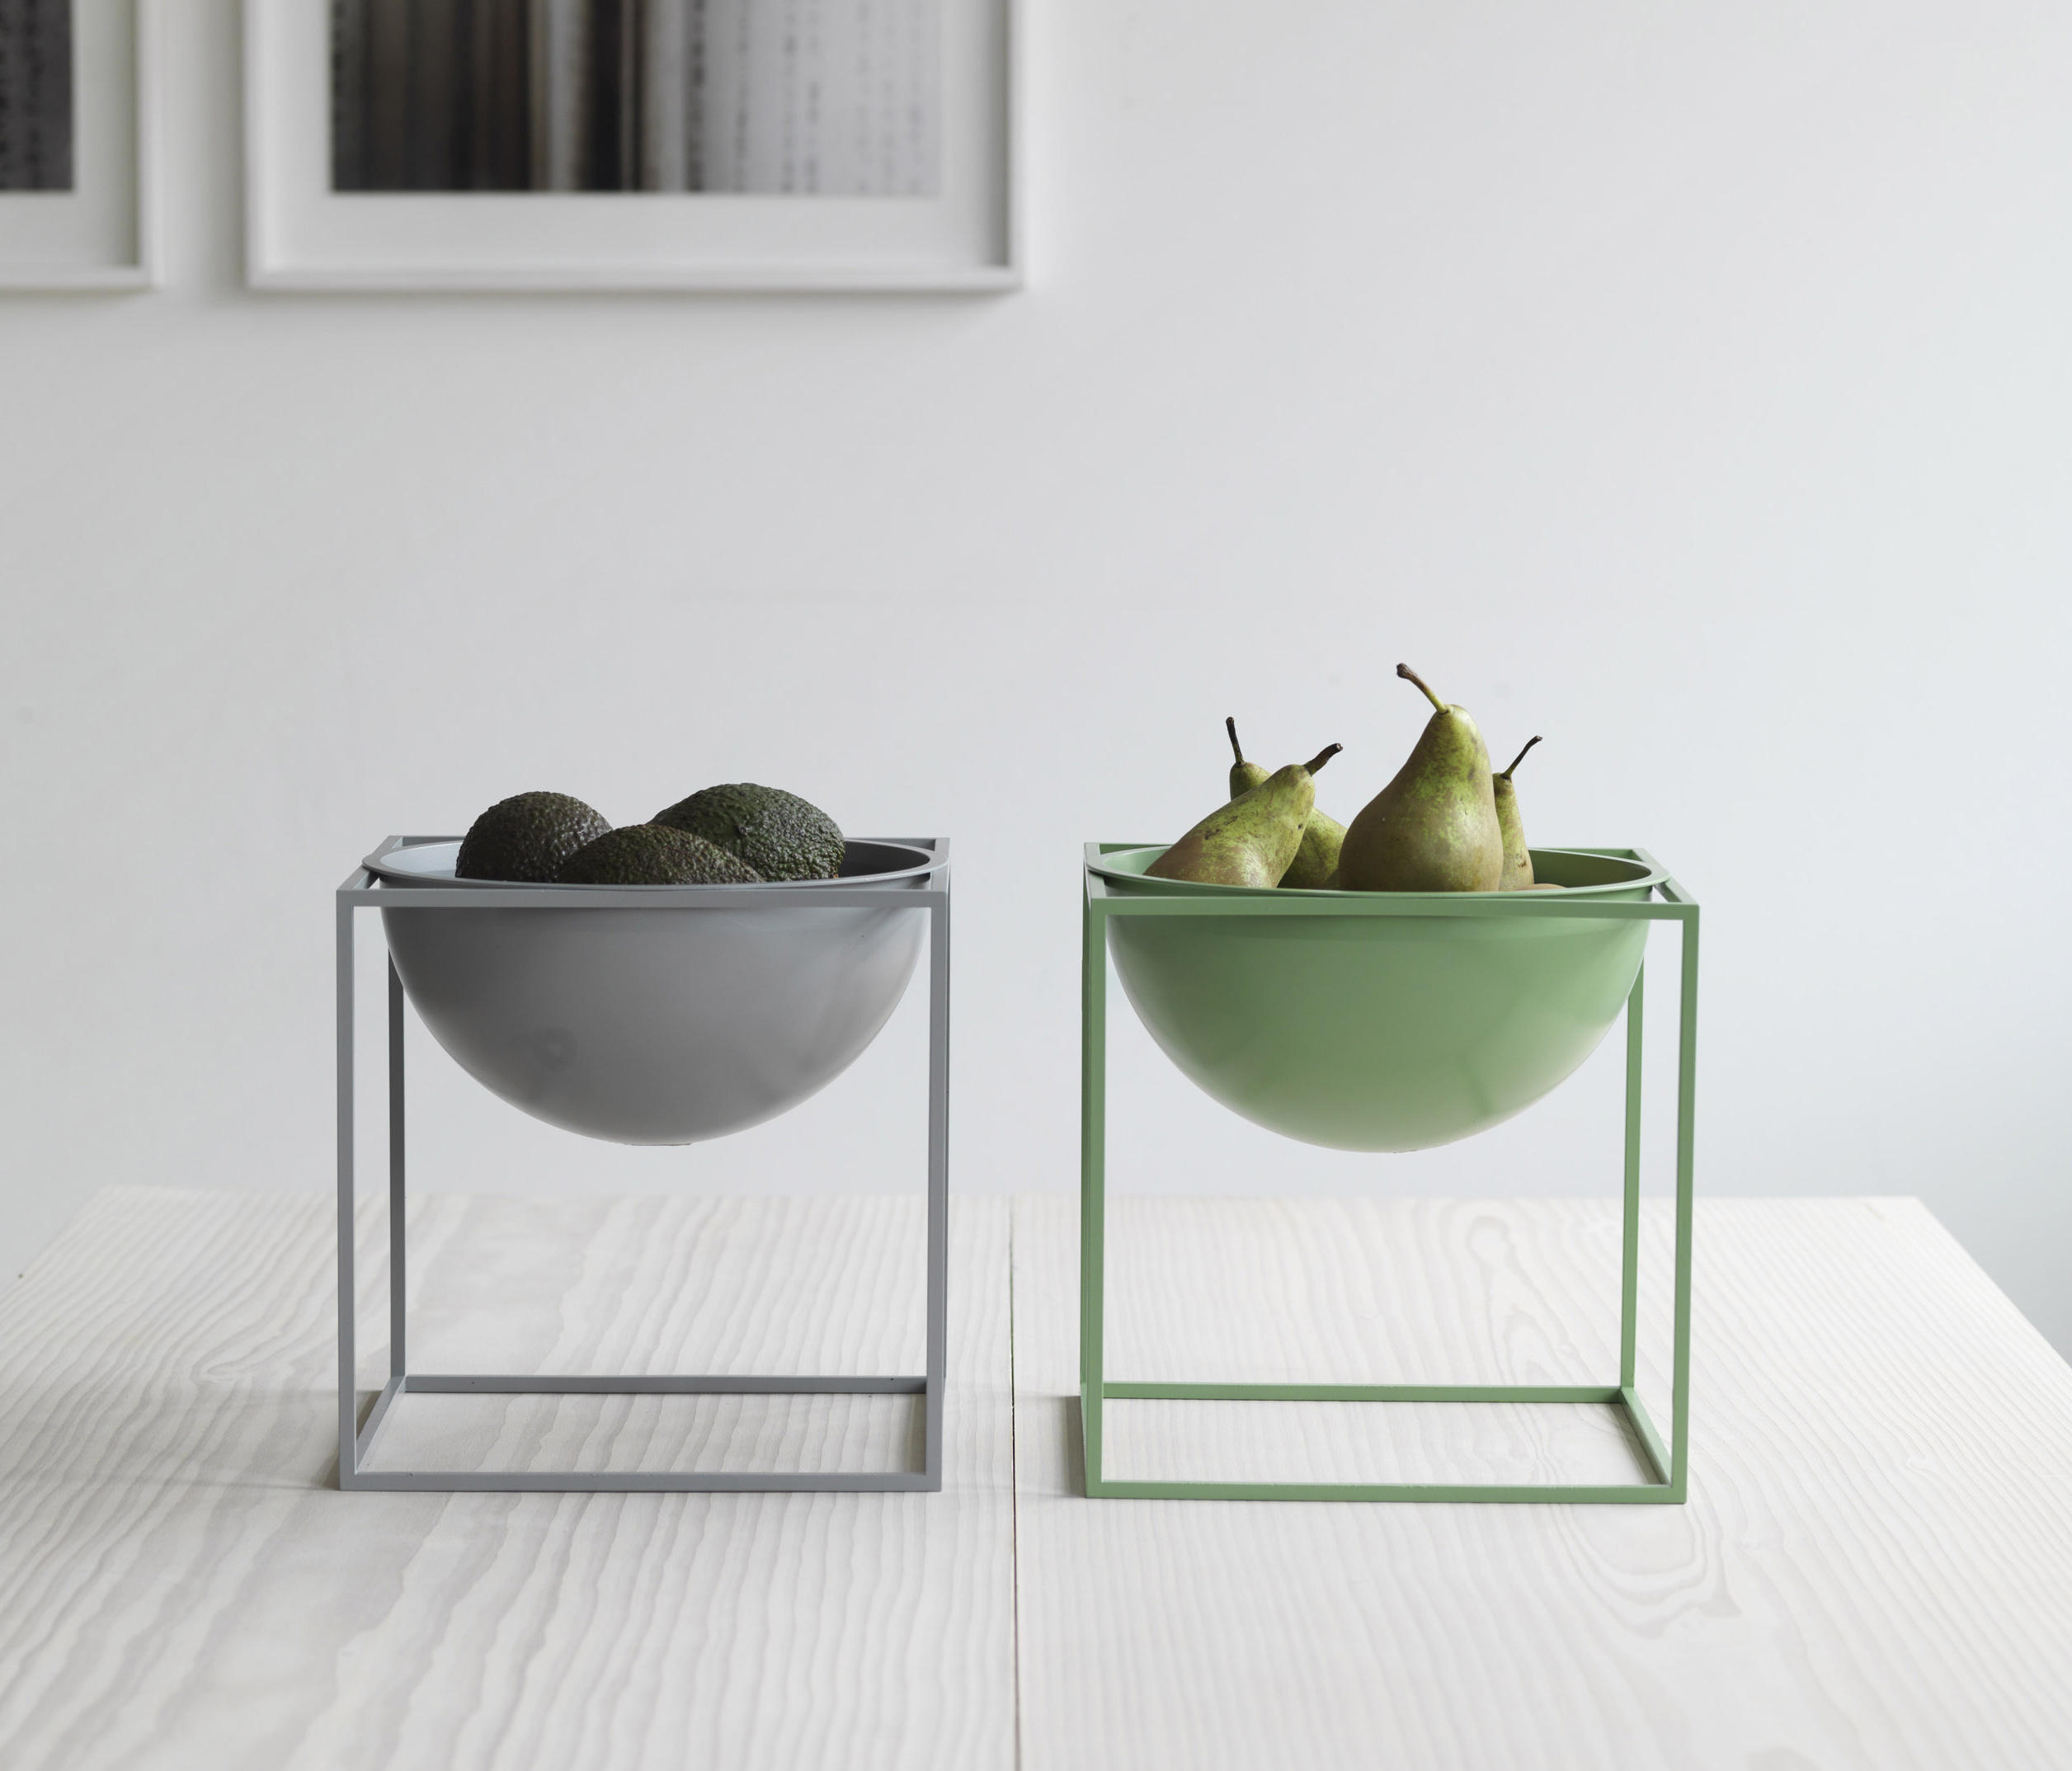 kubus bowl large copper bowls from by lassen architonic. Black Bedroom Furniture Sets. Home Design Ideas